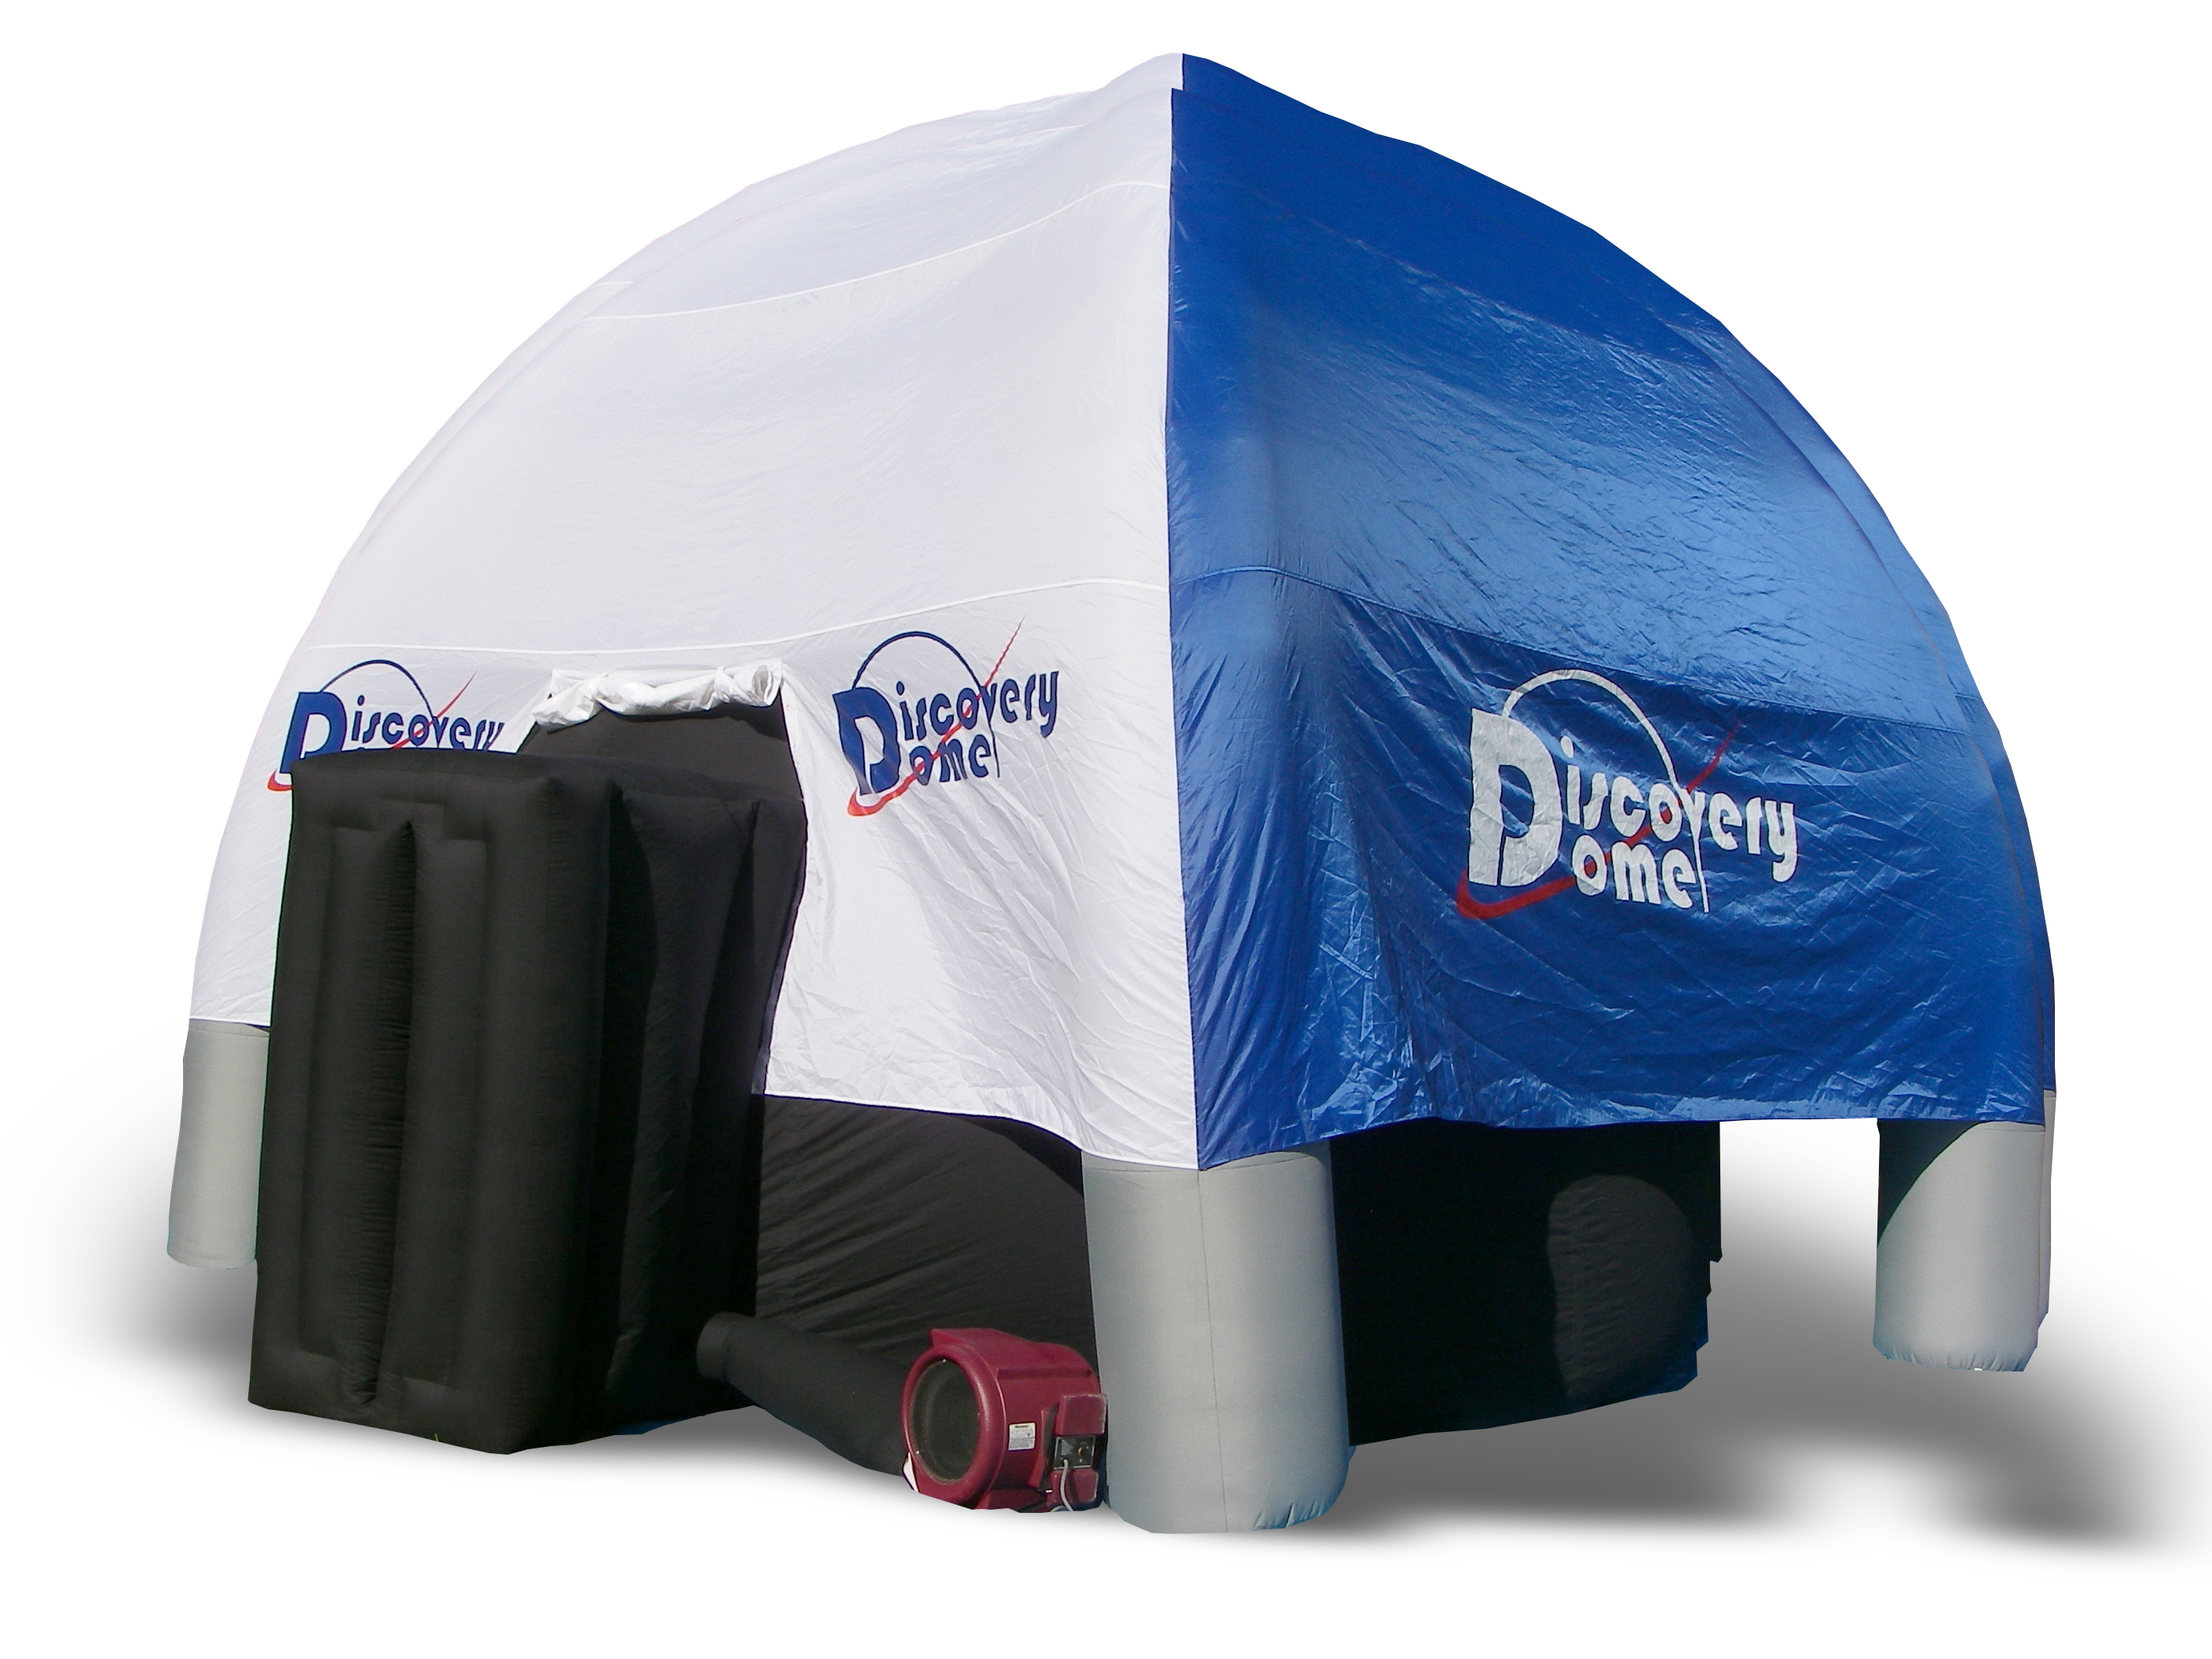 5 Meter Go-Dome under a Dome Cover for outdoor use.